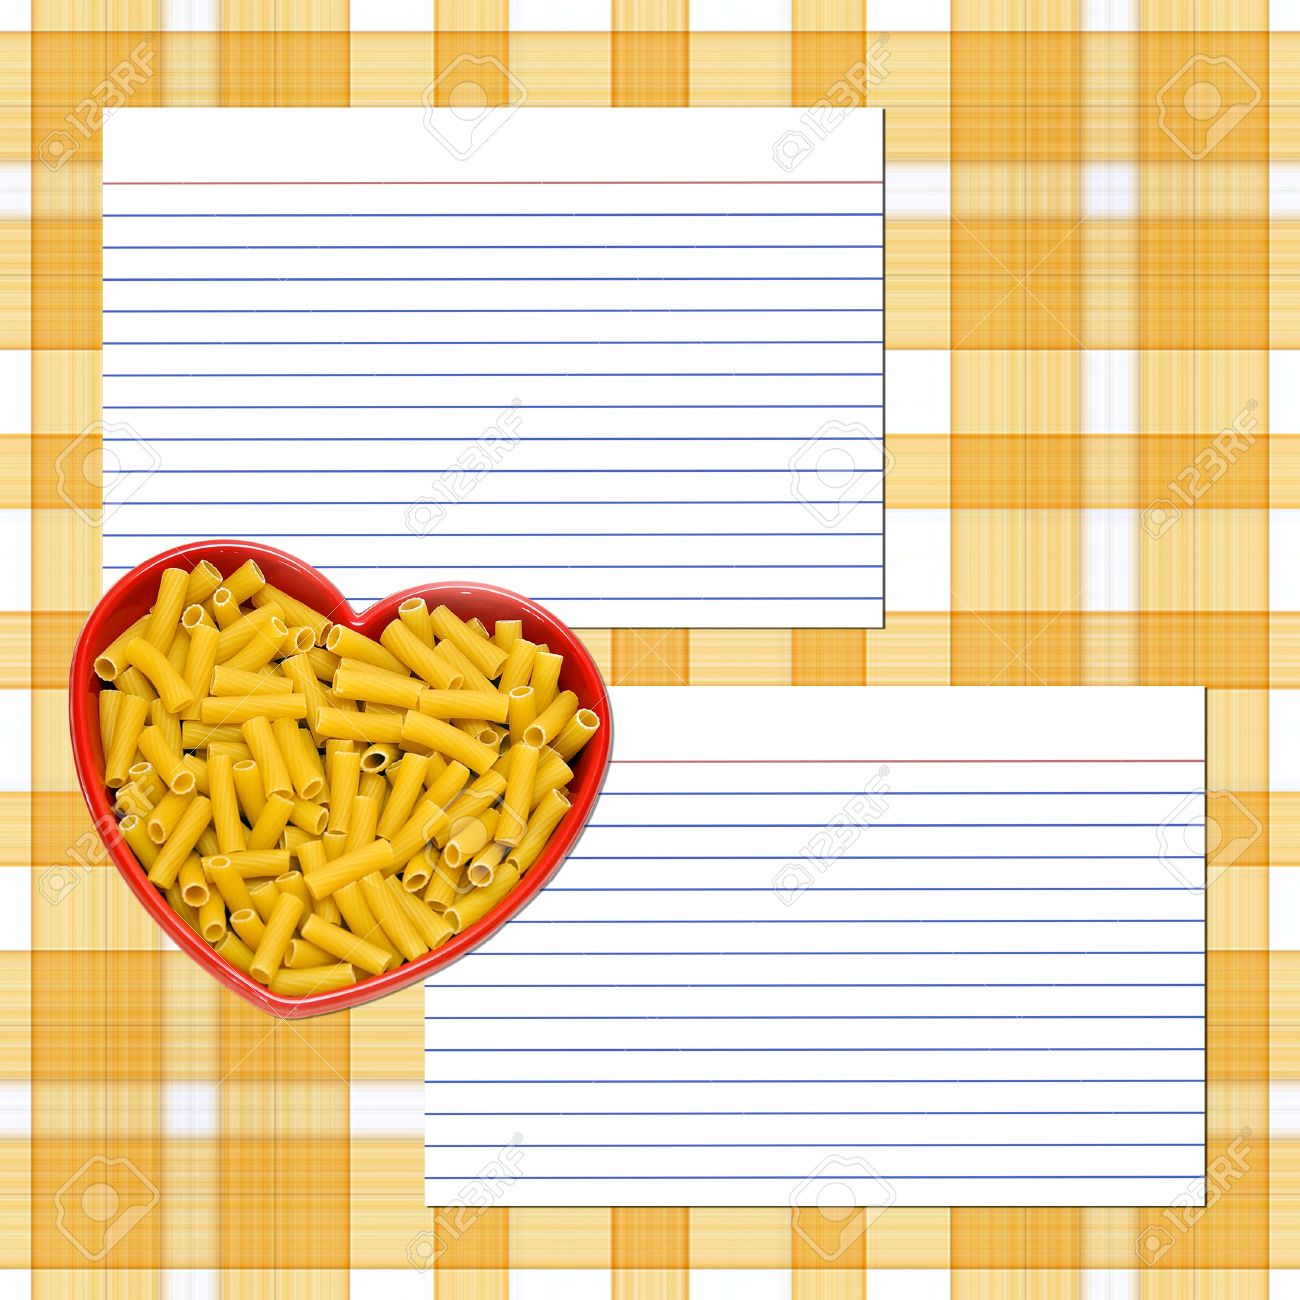 a recipe layout for pasta recipes recipe cards heart dish stock